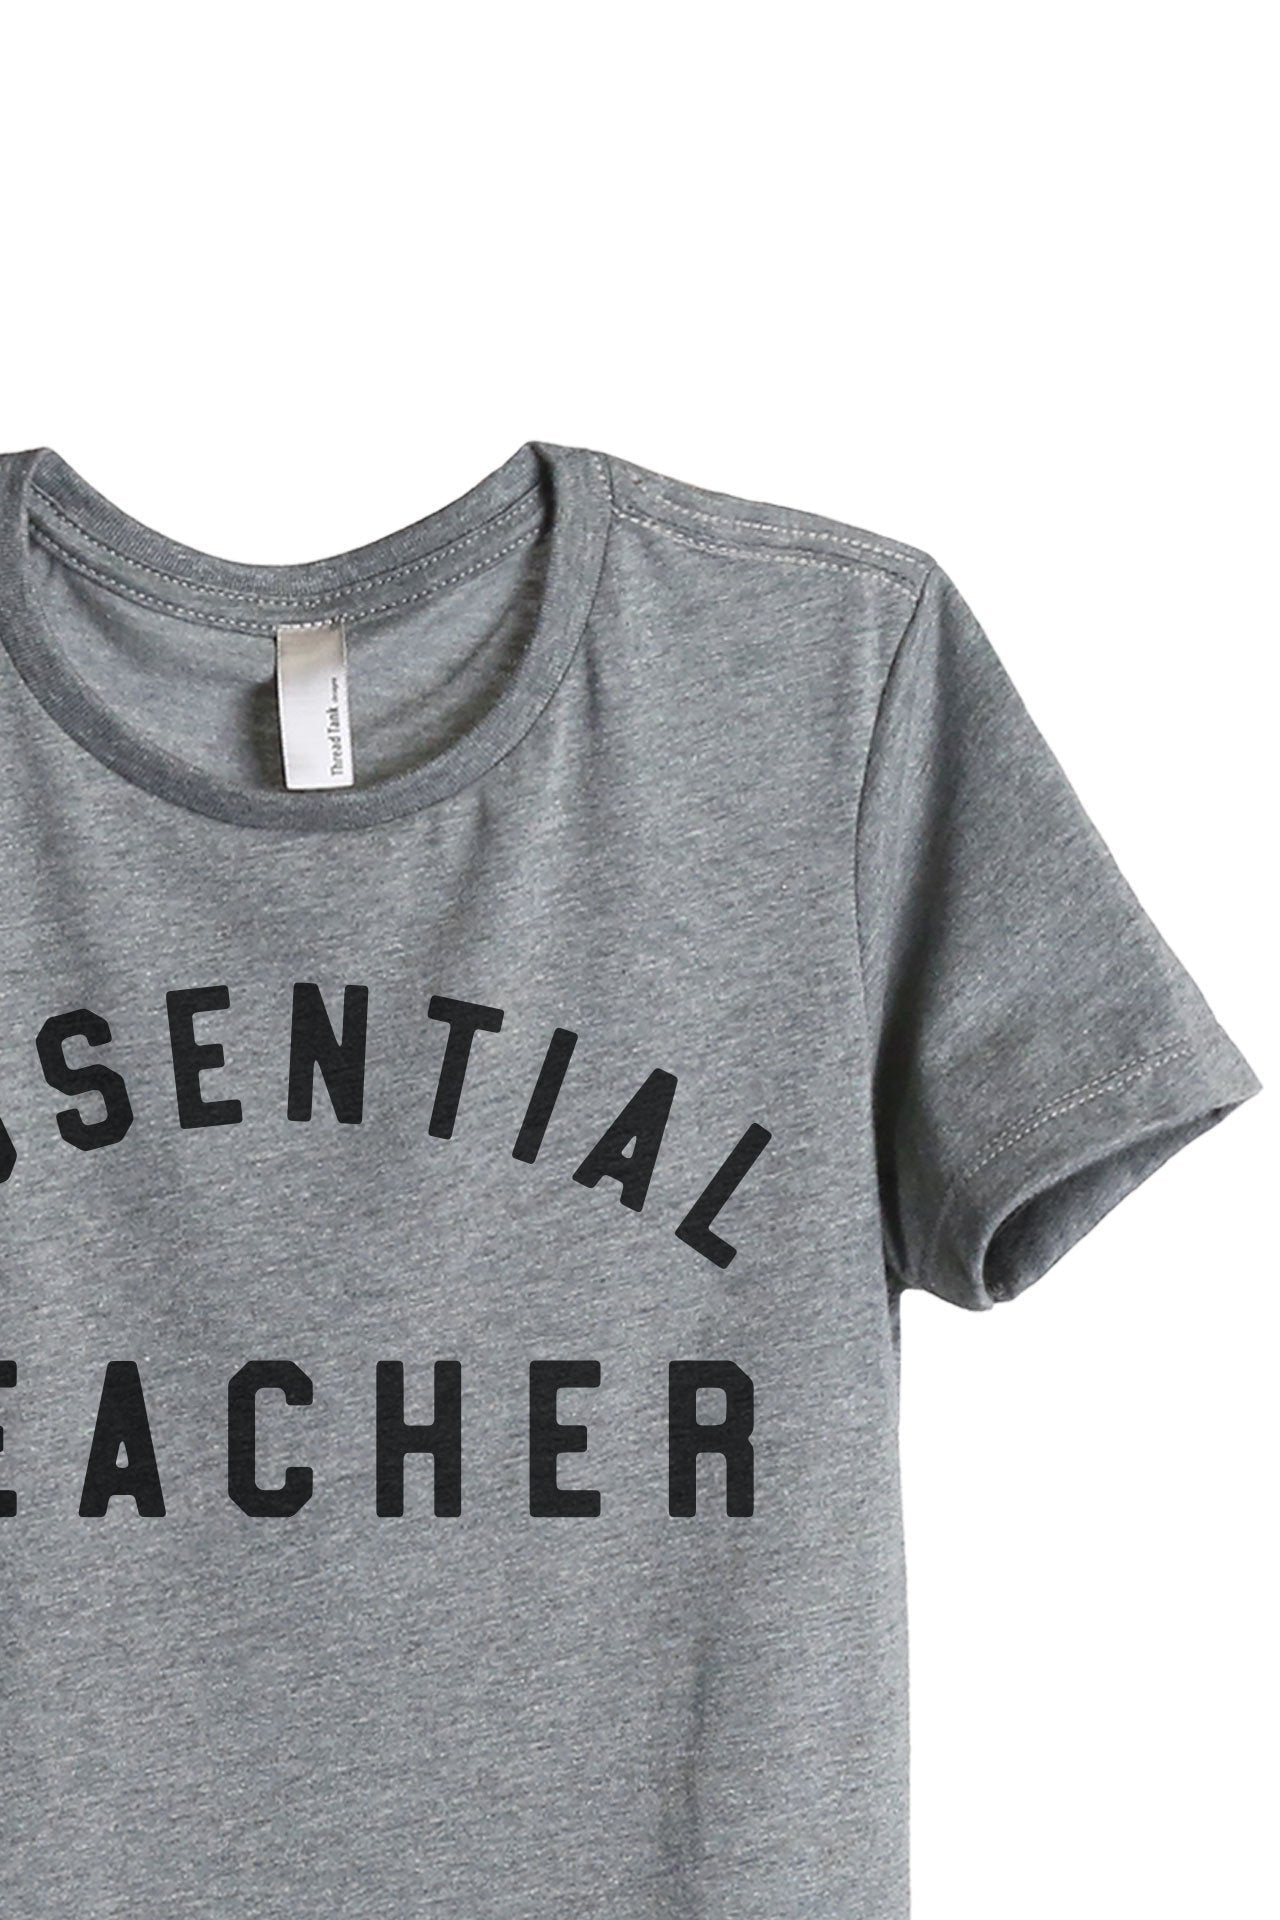 Essential Teacher Women's Relaxed Crewneck T-Shirt Top Tee Heather Grey